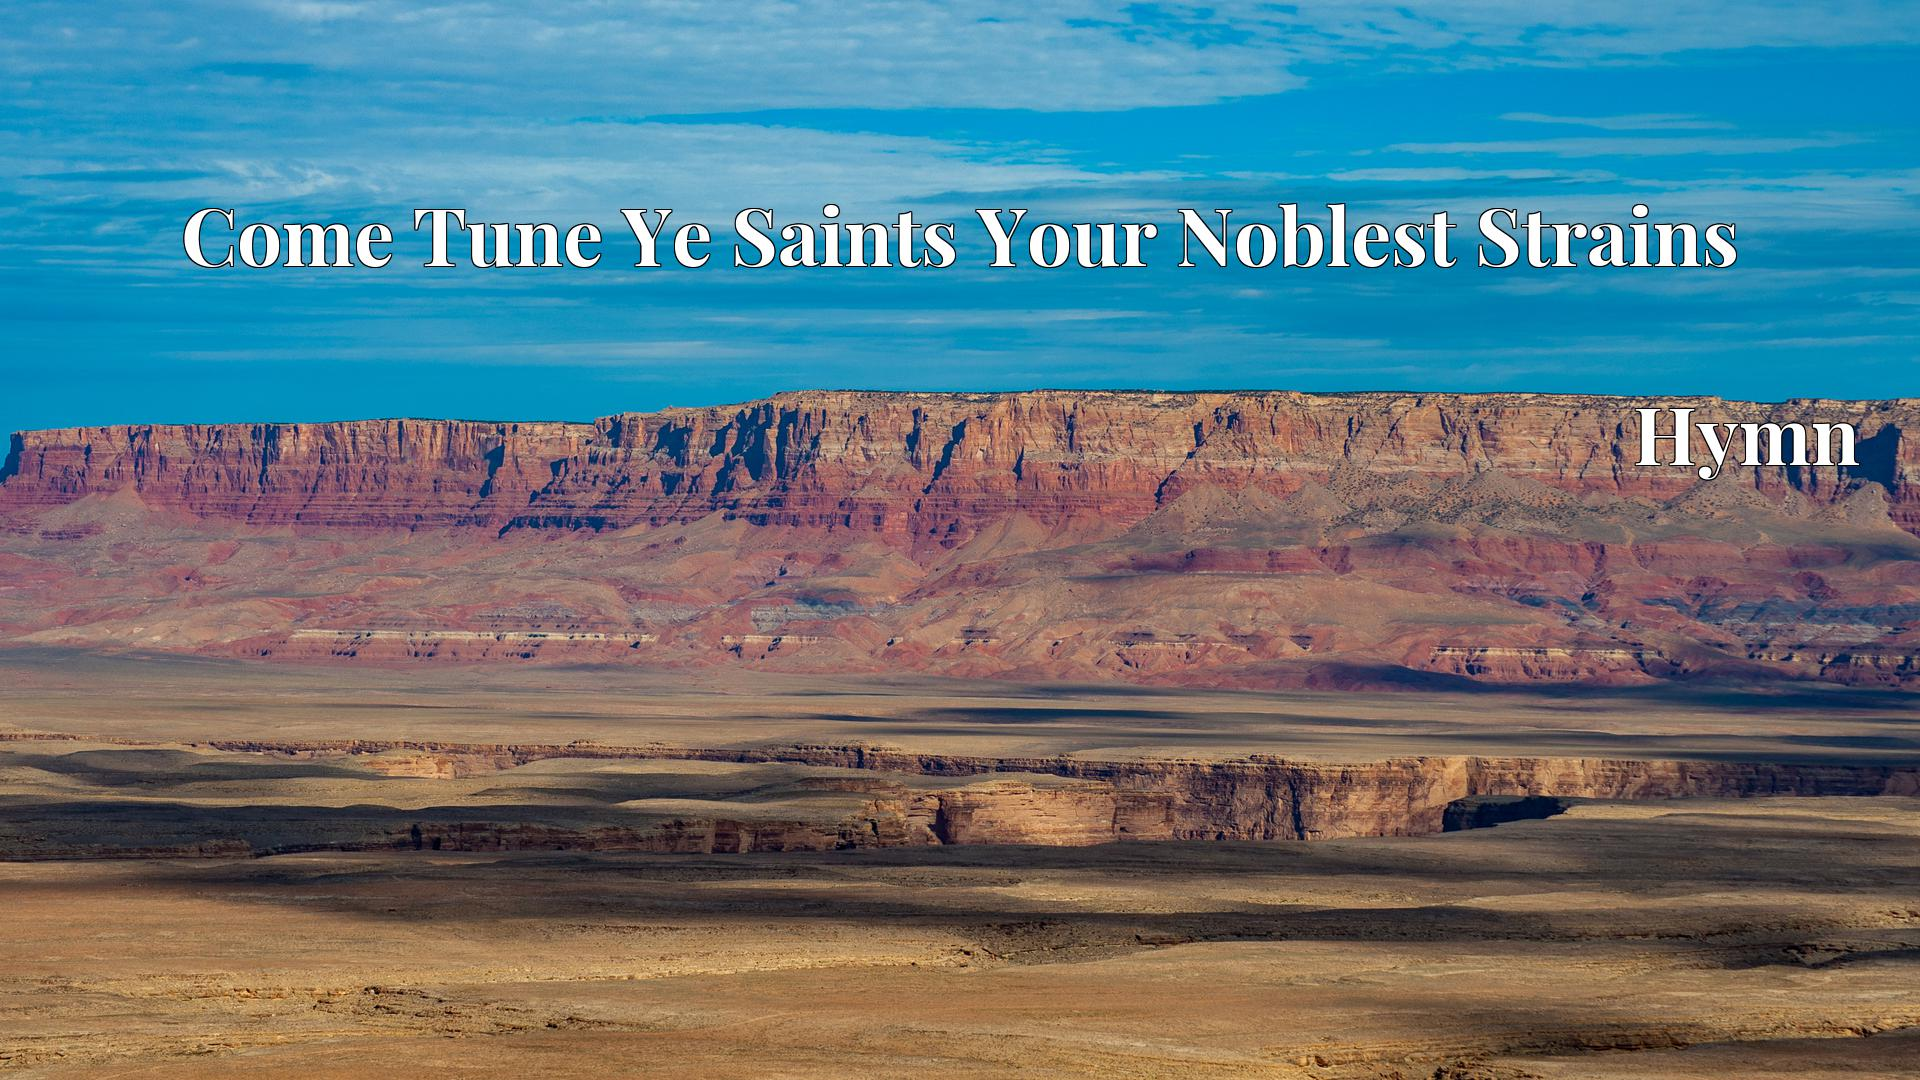 Come Tune Ye Saints Your Noblest Strains - Hymn